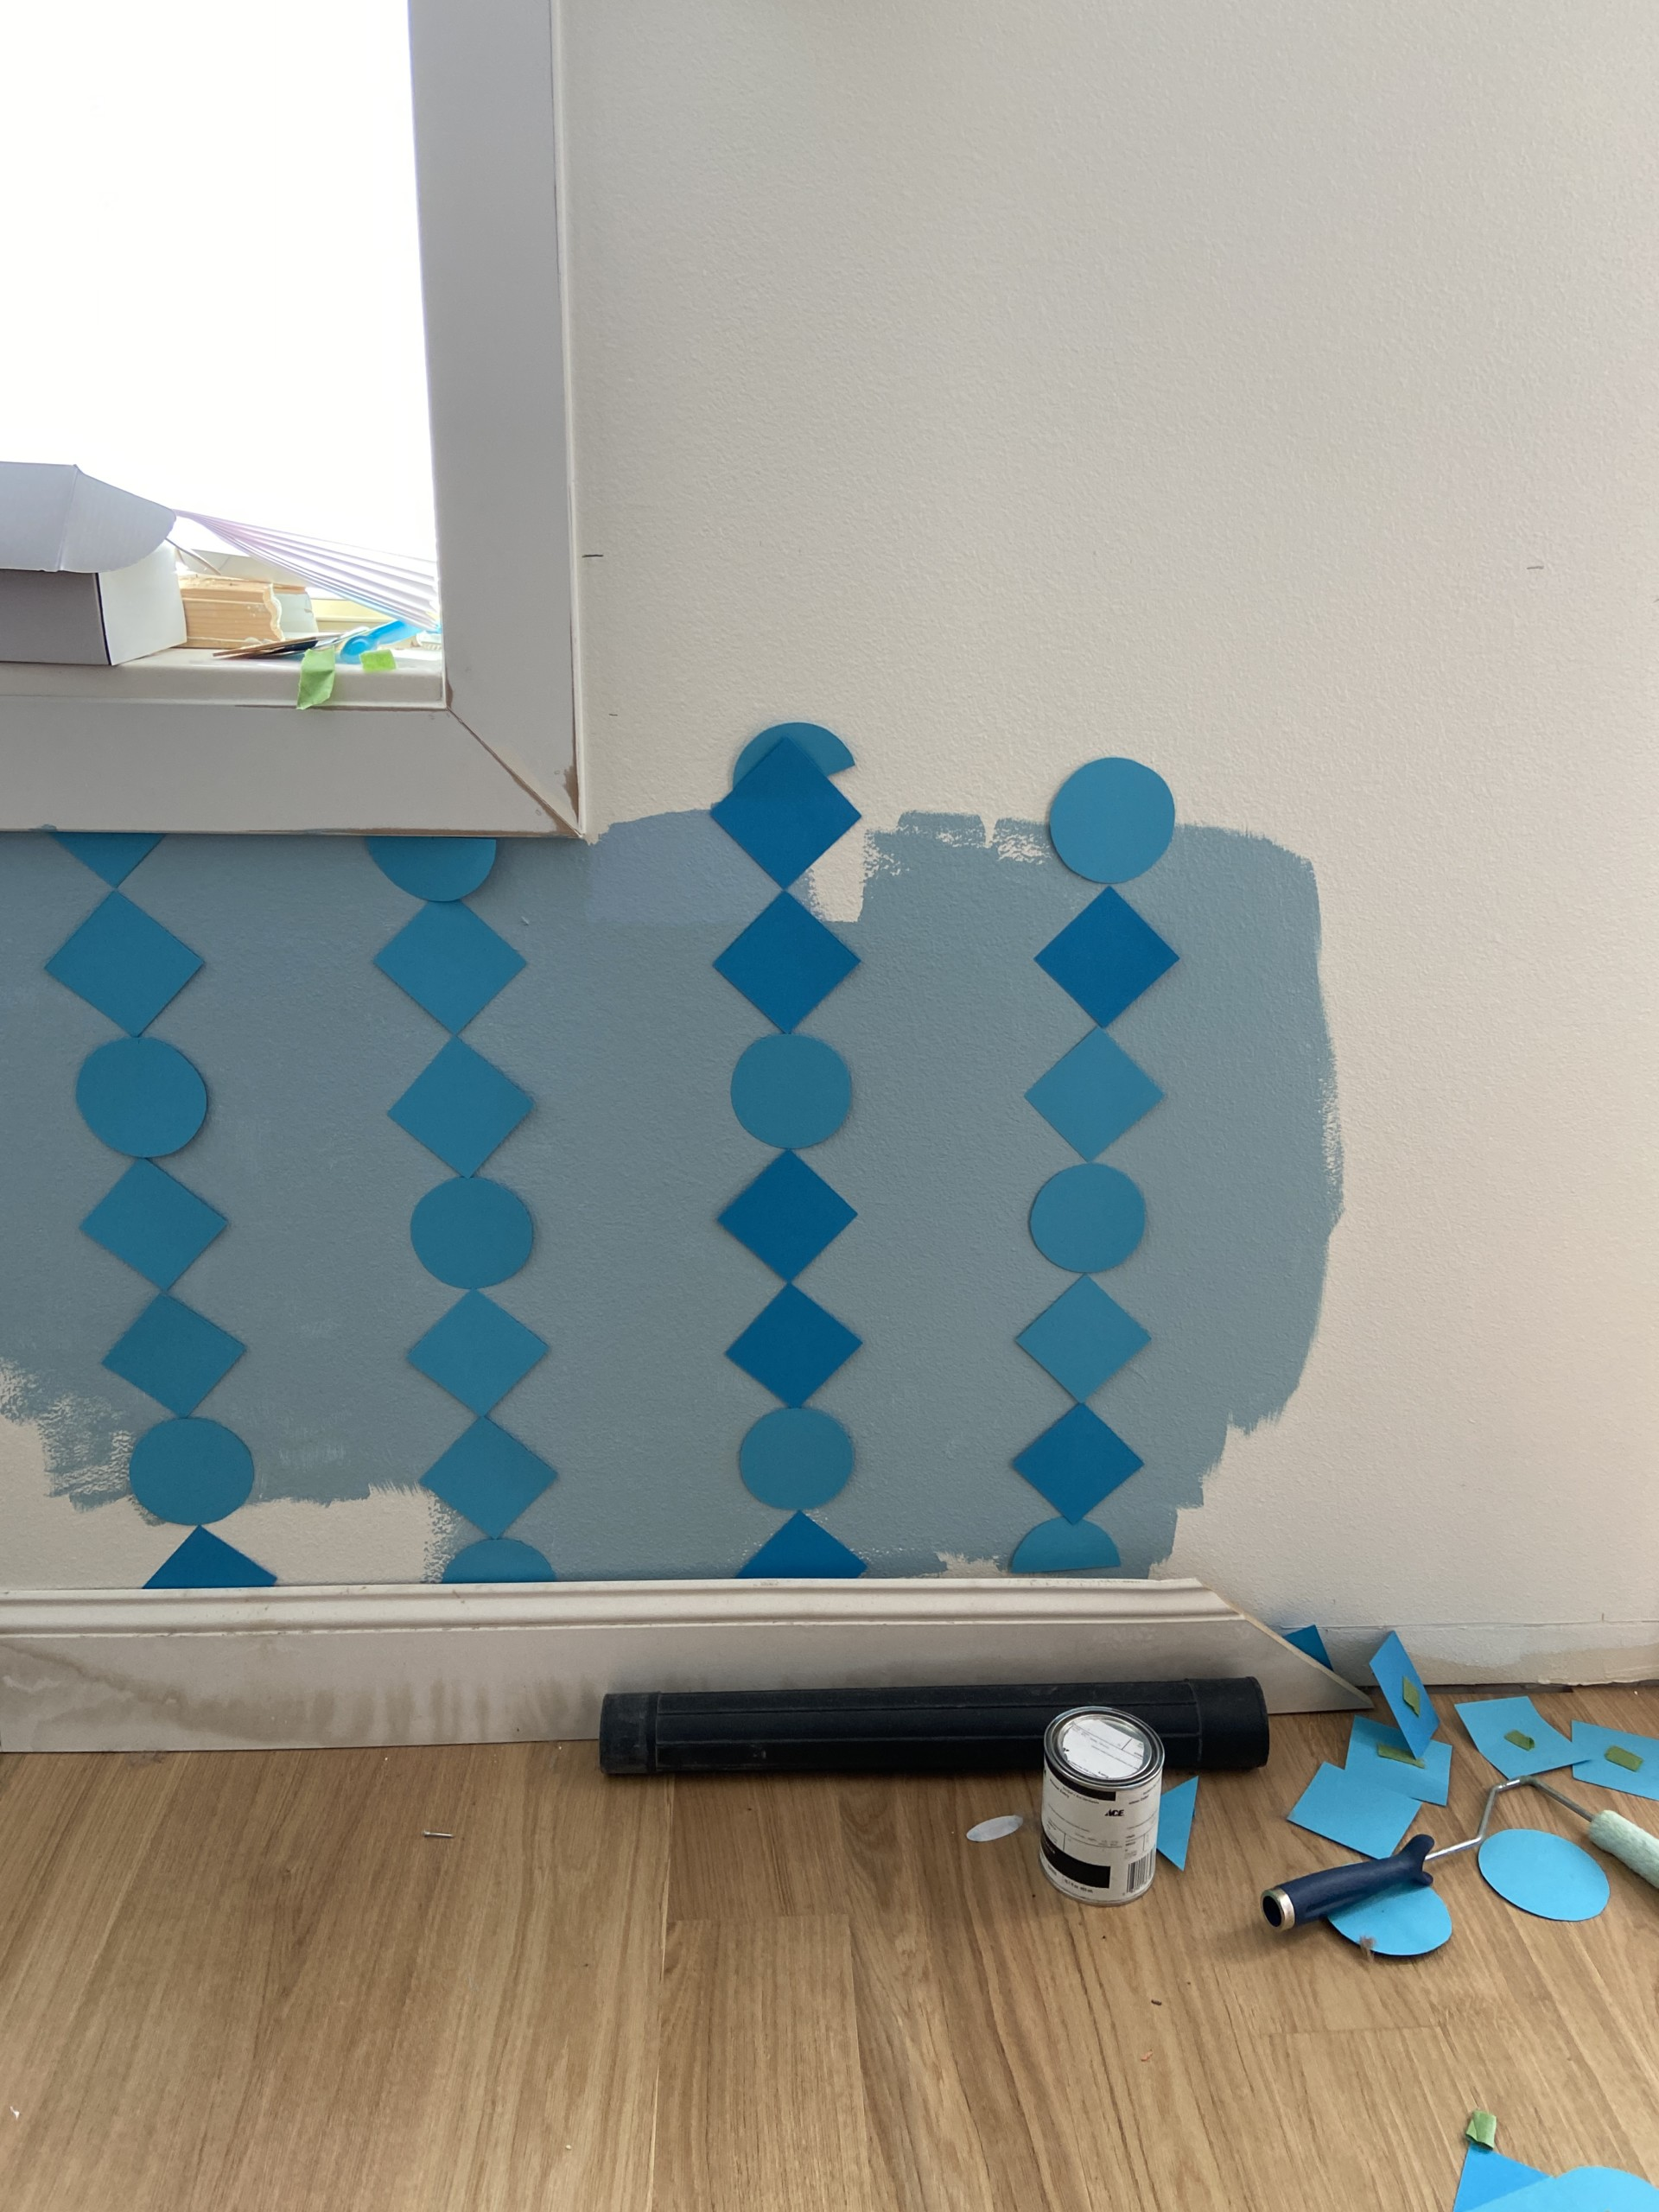 Paper mockup of DIY wainscoting on a white and blue wall.